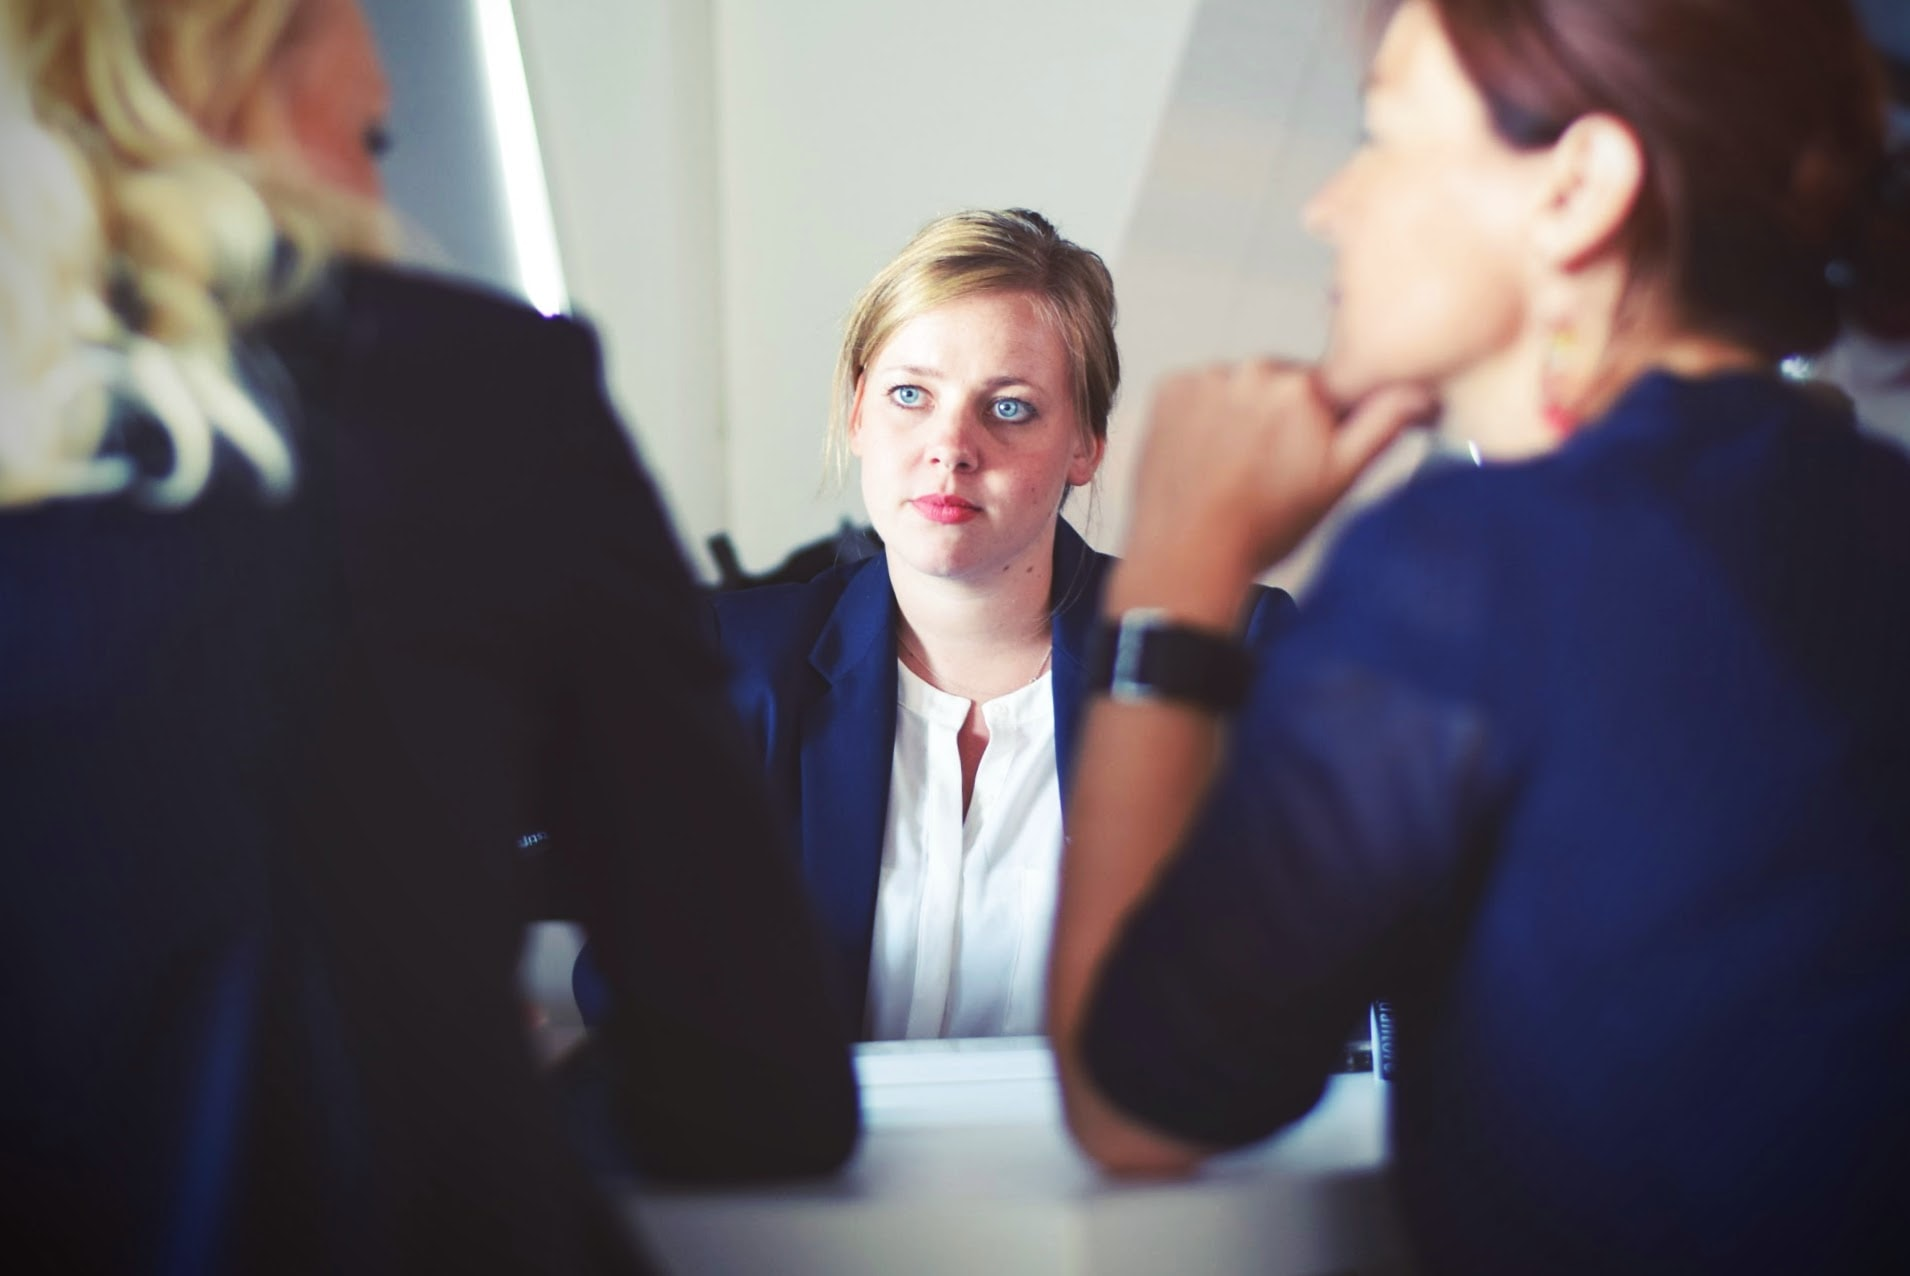 A white woman sits at a table in the centre of the frame. Two people are speaking to her with their backs to the camera from the other side of the table.